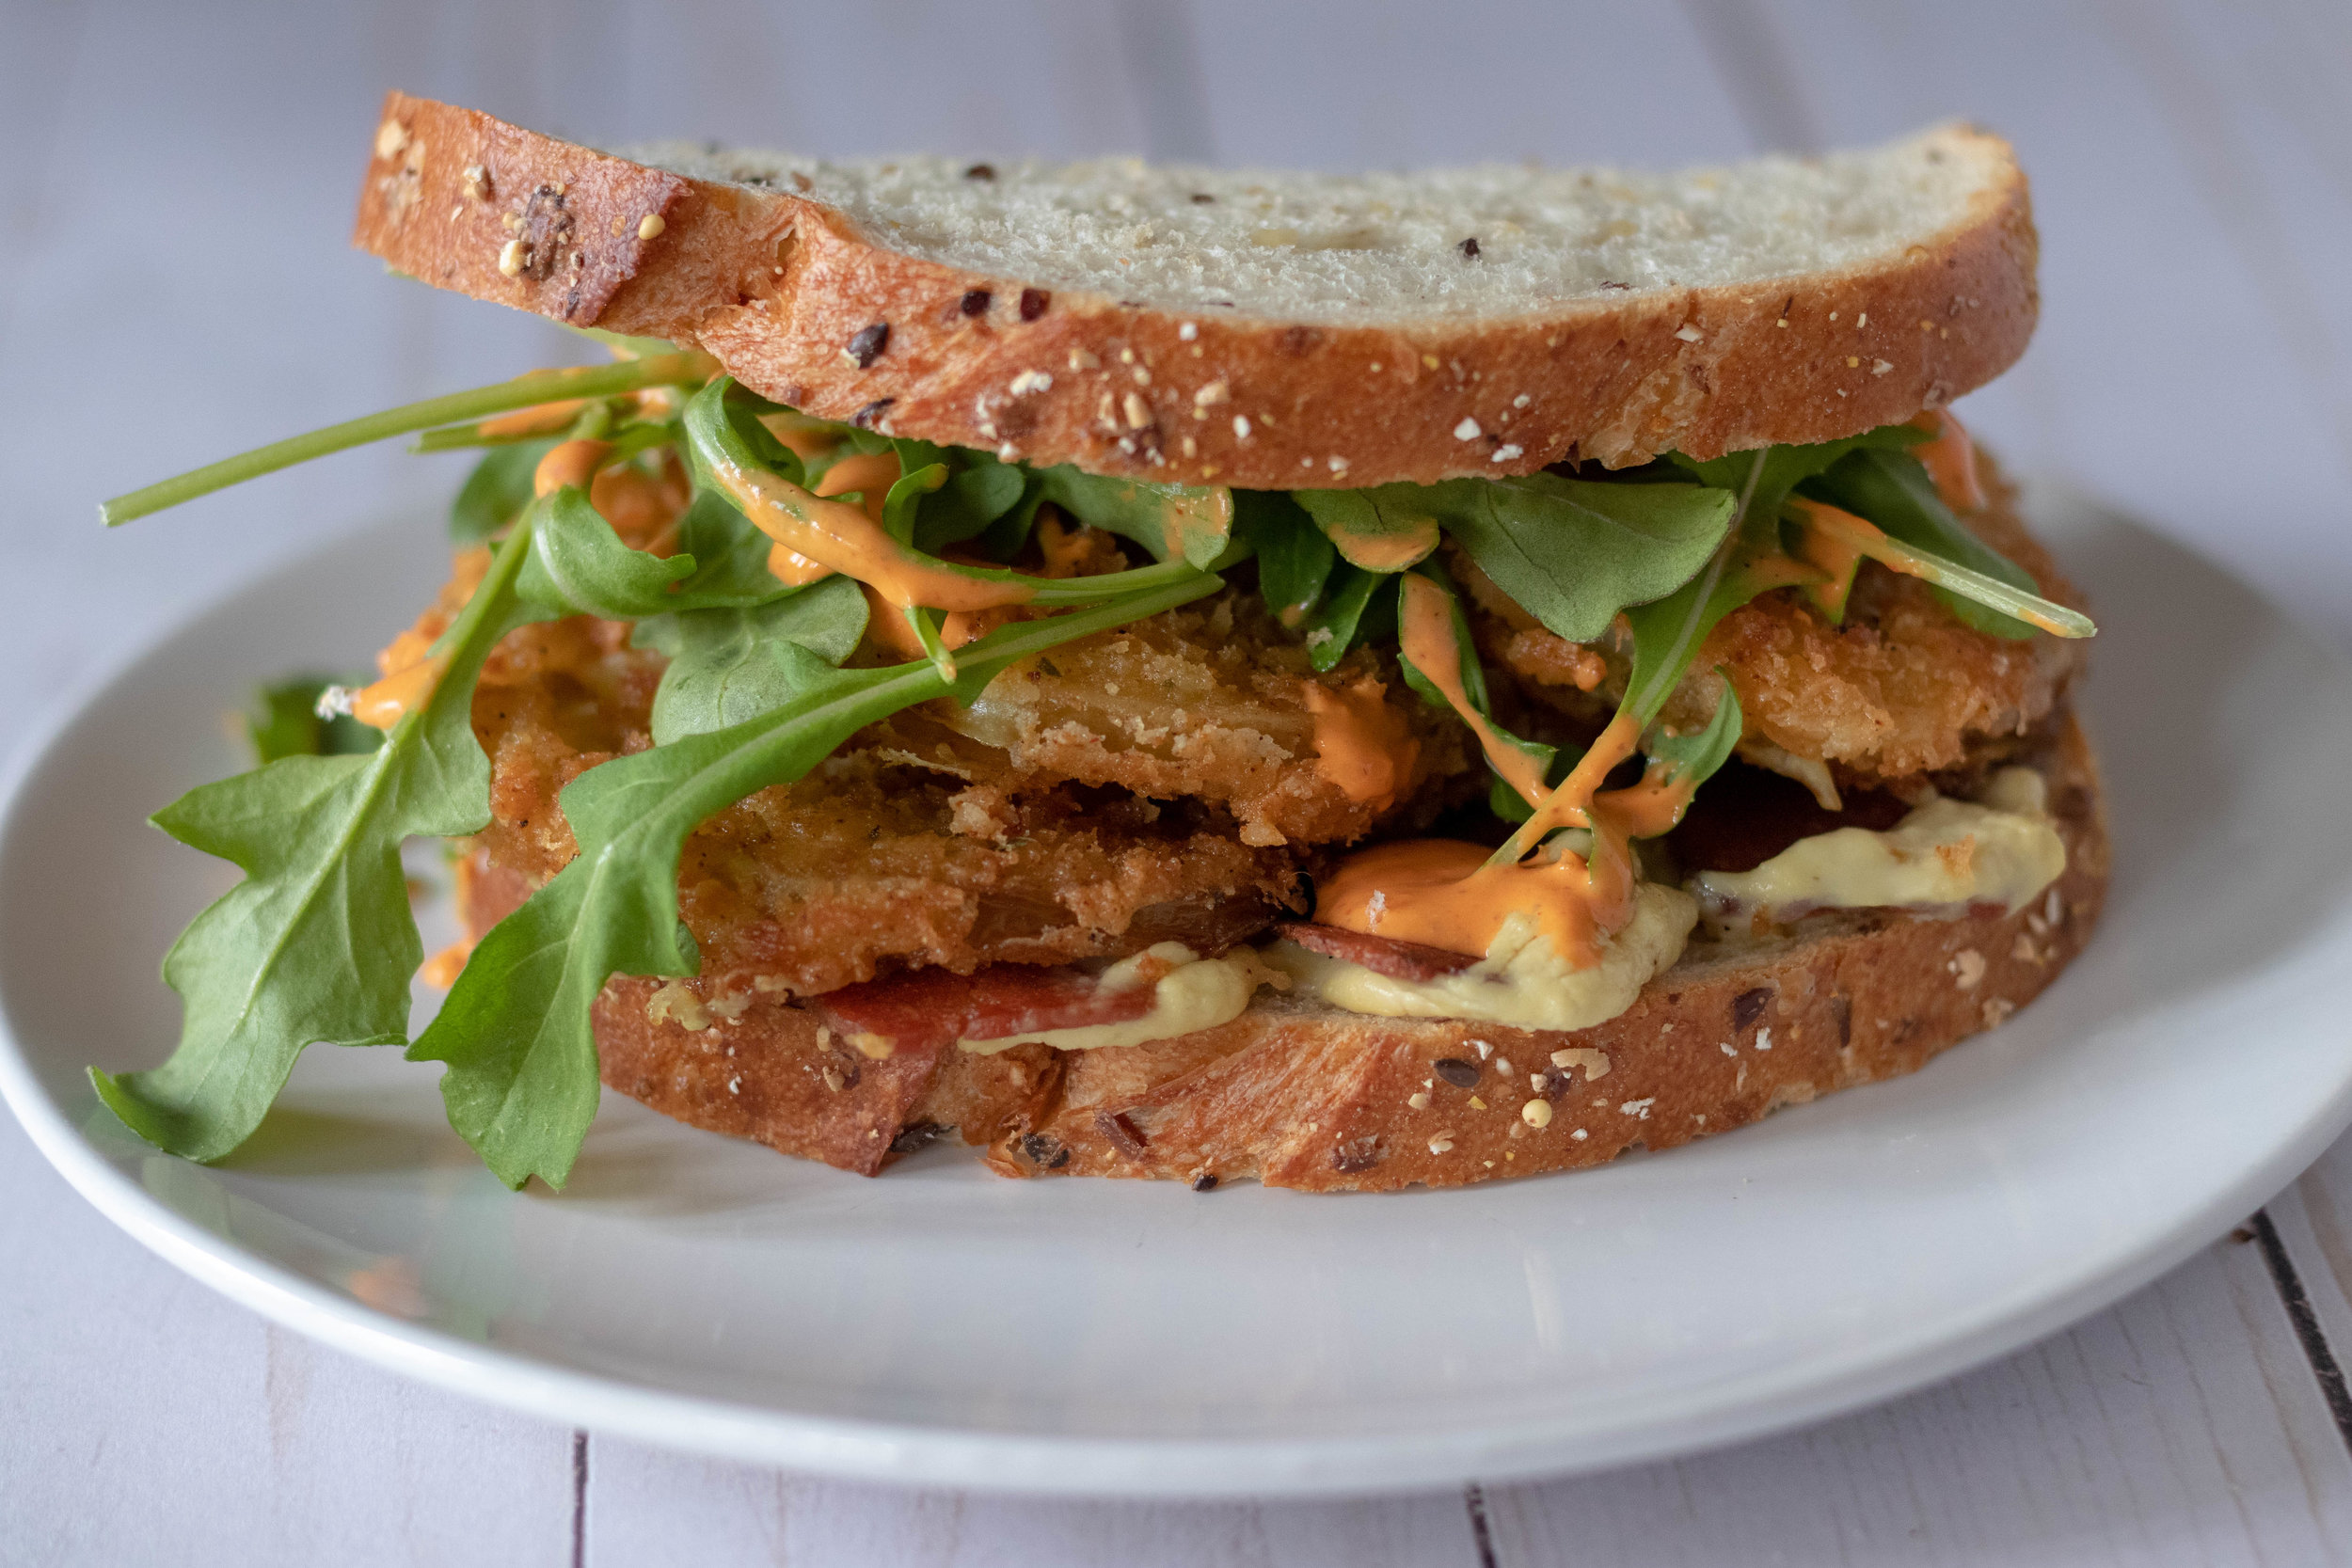 Fried green tomato and arugula sandwich.